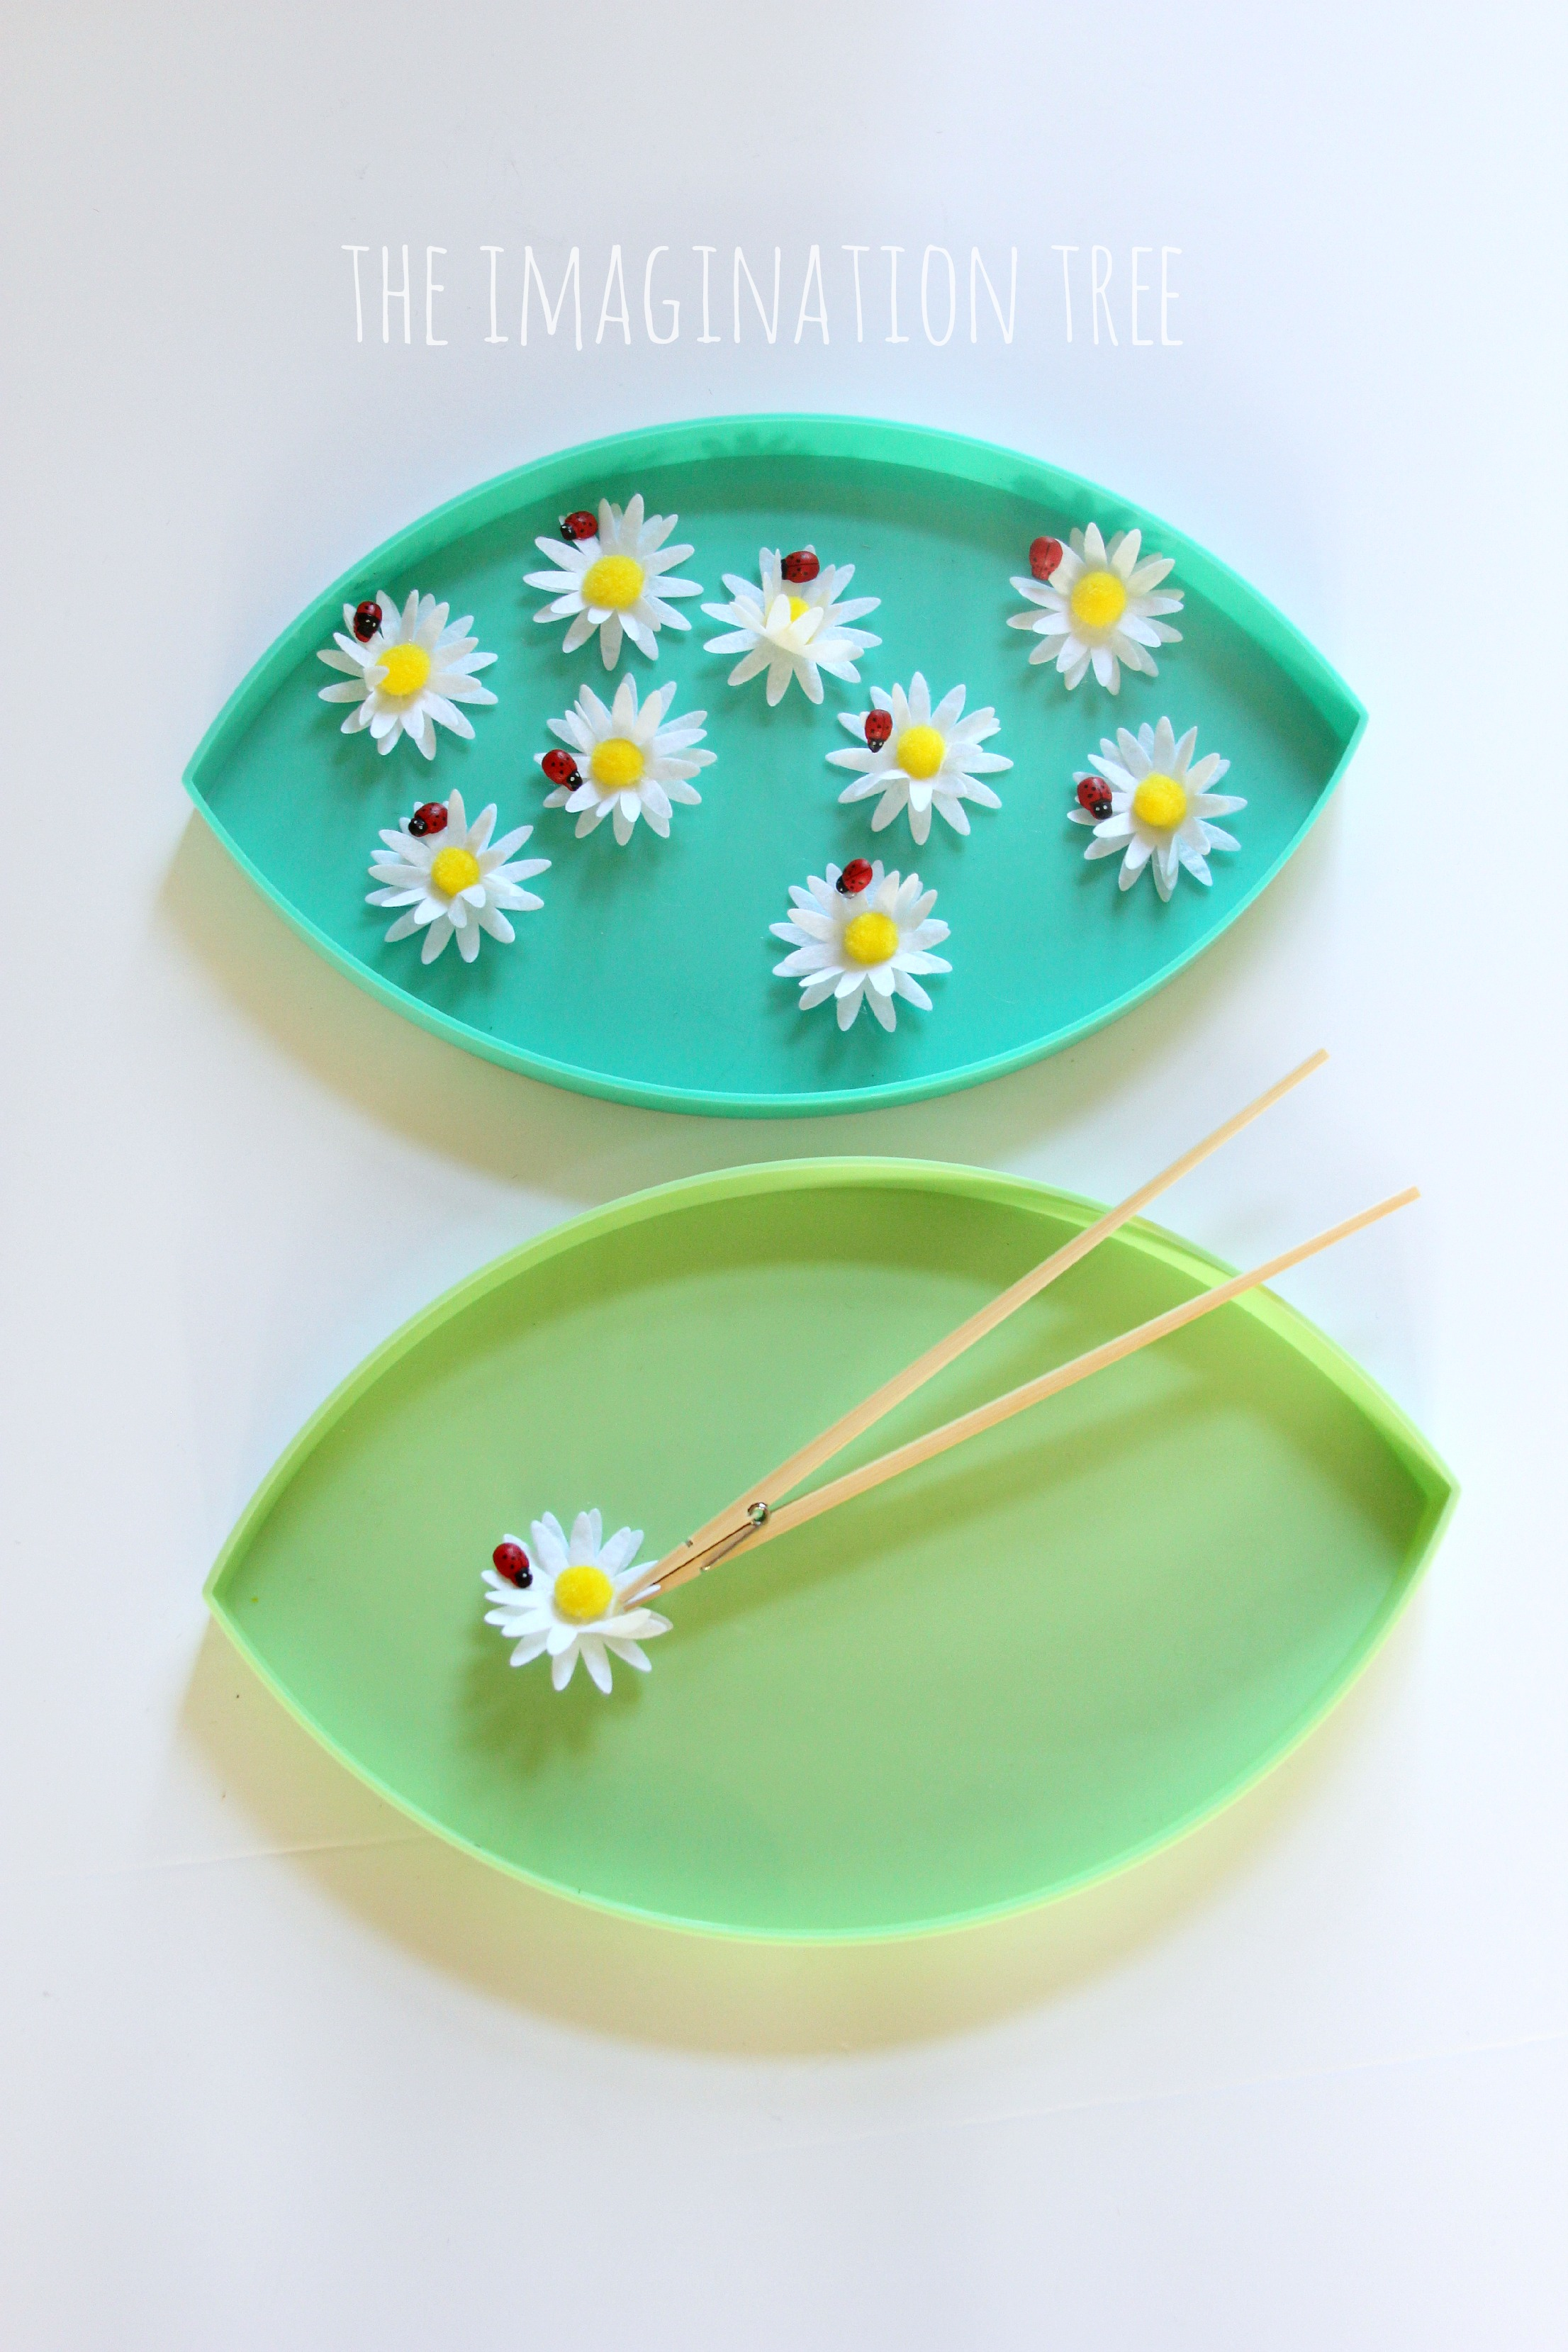 Counting Flowers Fine Motor Skills Activity The Imagination Tree